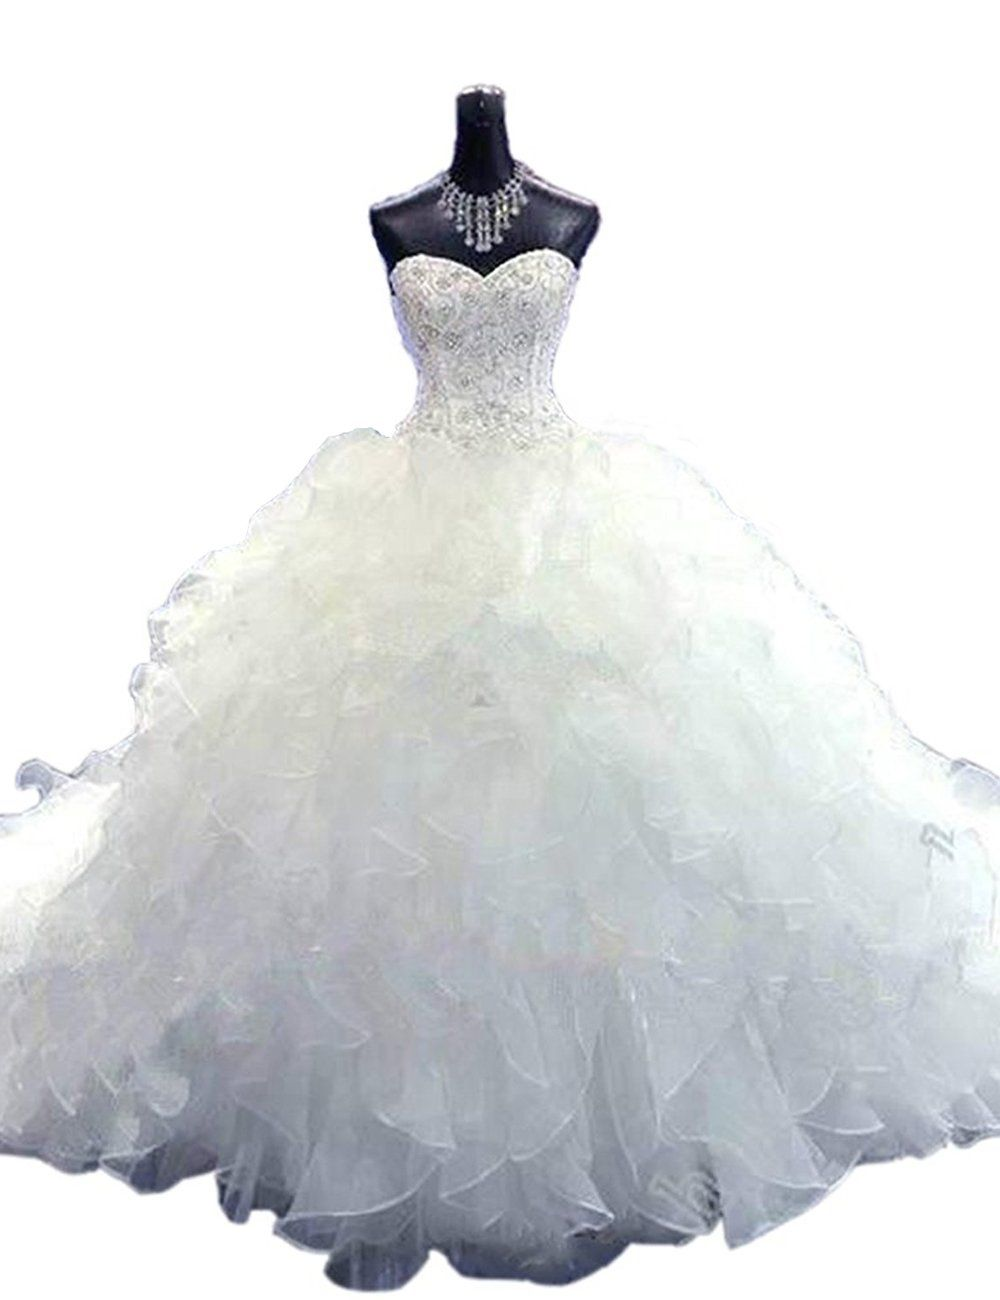 Wedding dress restoration  Mulanbridal Ball Gown Wedding Dresses Sweetheart Corset Organza